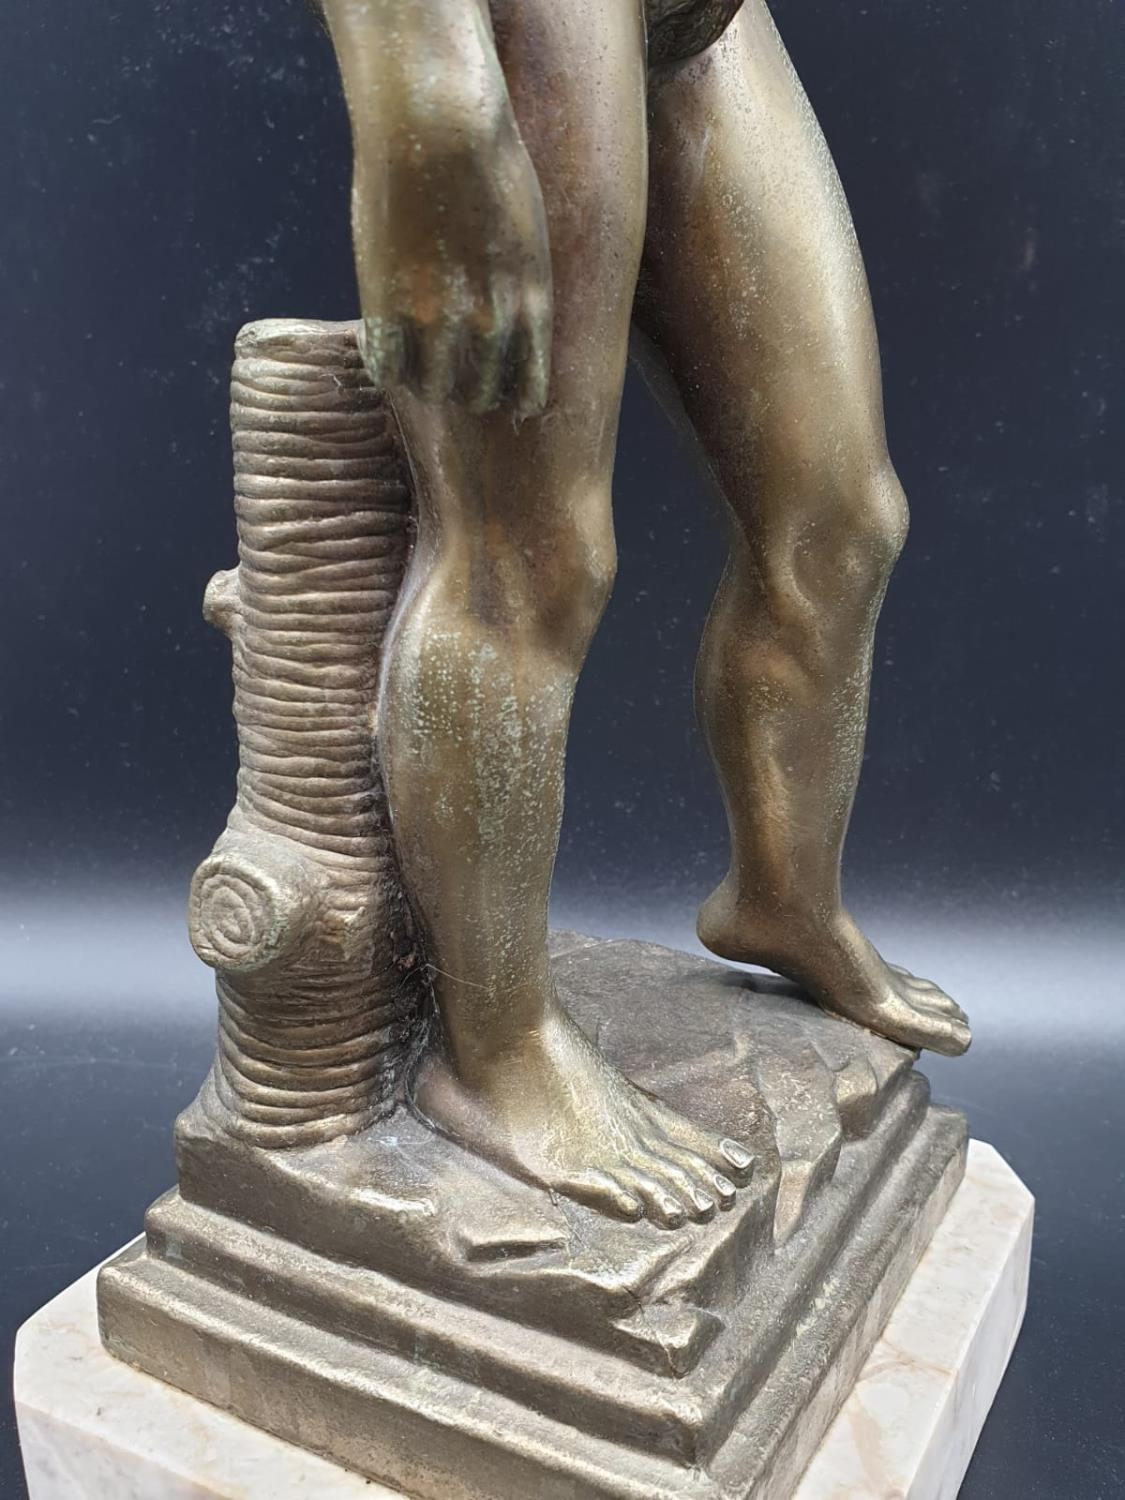 A Statue of Michelangelo's David in Brass on a Marble Base 40cms Tall 3.6kg - Image 7 of 9